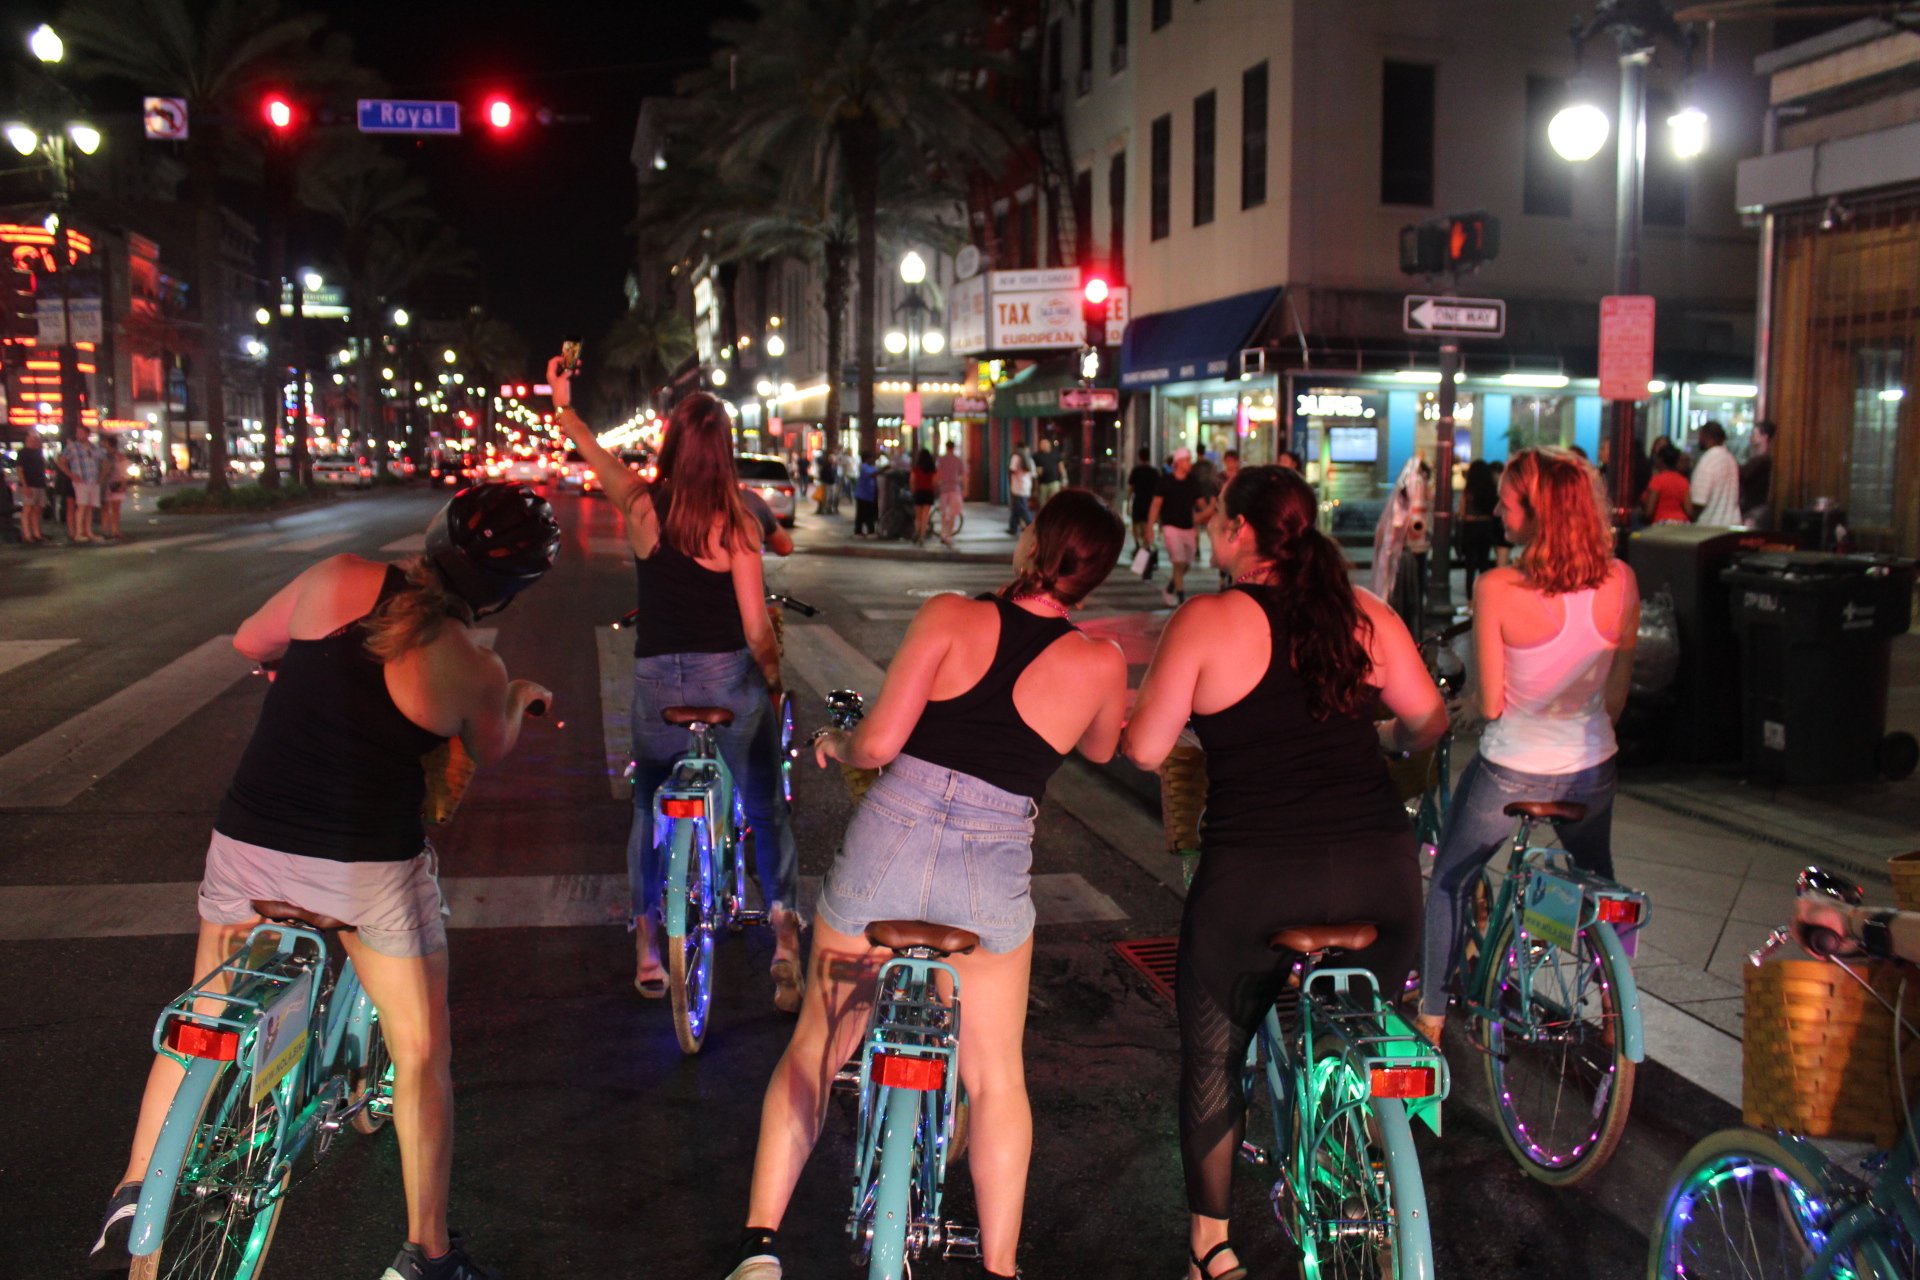 Our social ride is a party on two wheels. We offer the primer night ride of Nola. Be the lights of the city on our professionally maintained bikes. Our wheels are blinged out with lights and we have amplified music to boot. Don't miss out on this amazing group ride experience.